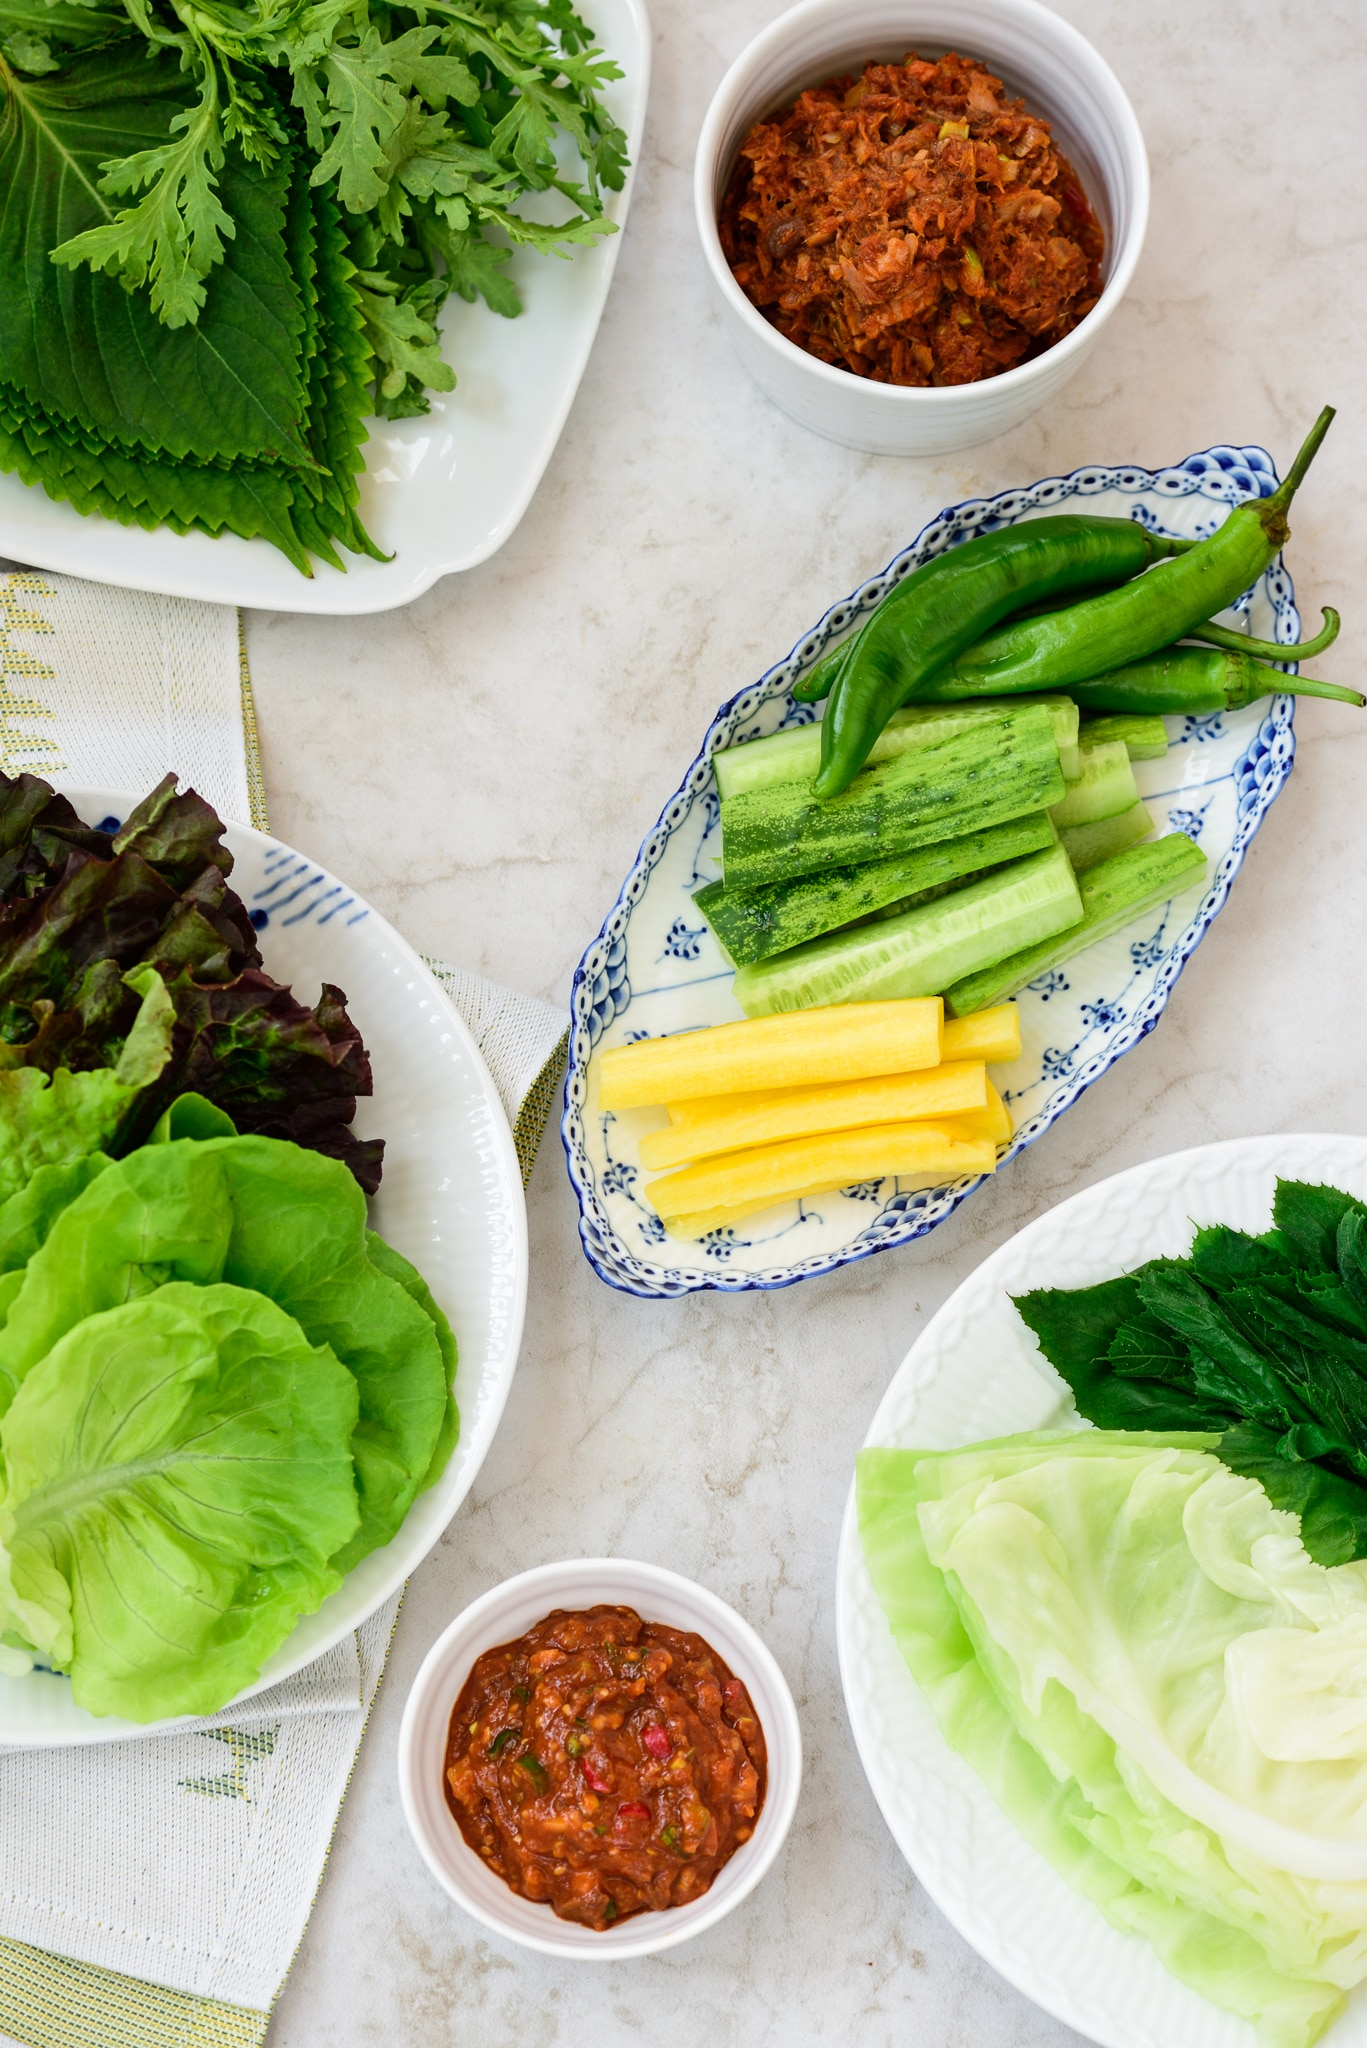 DSC1817 - Ssamjang (Sauce for Korean Lettuce Wraps)